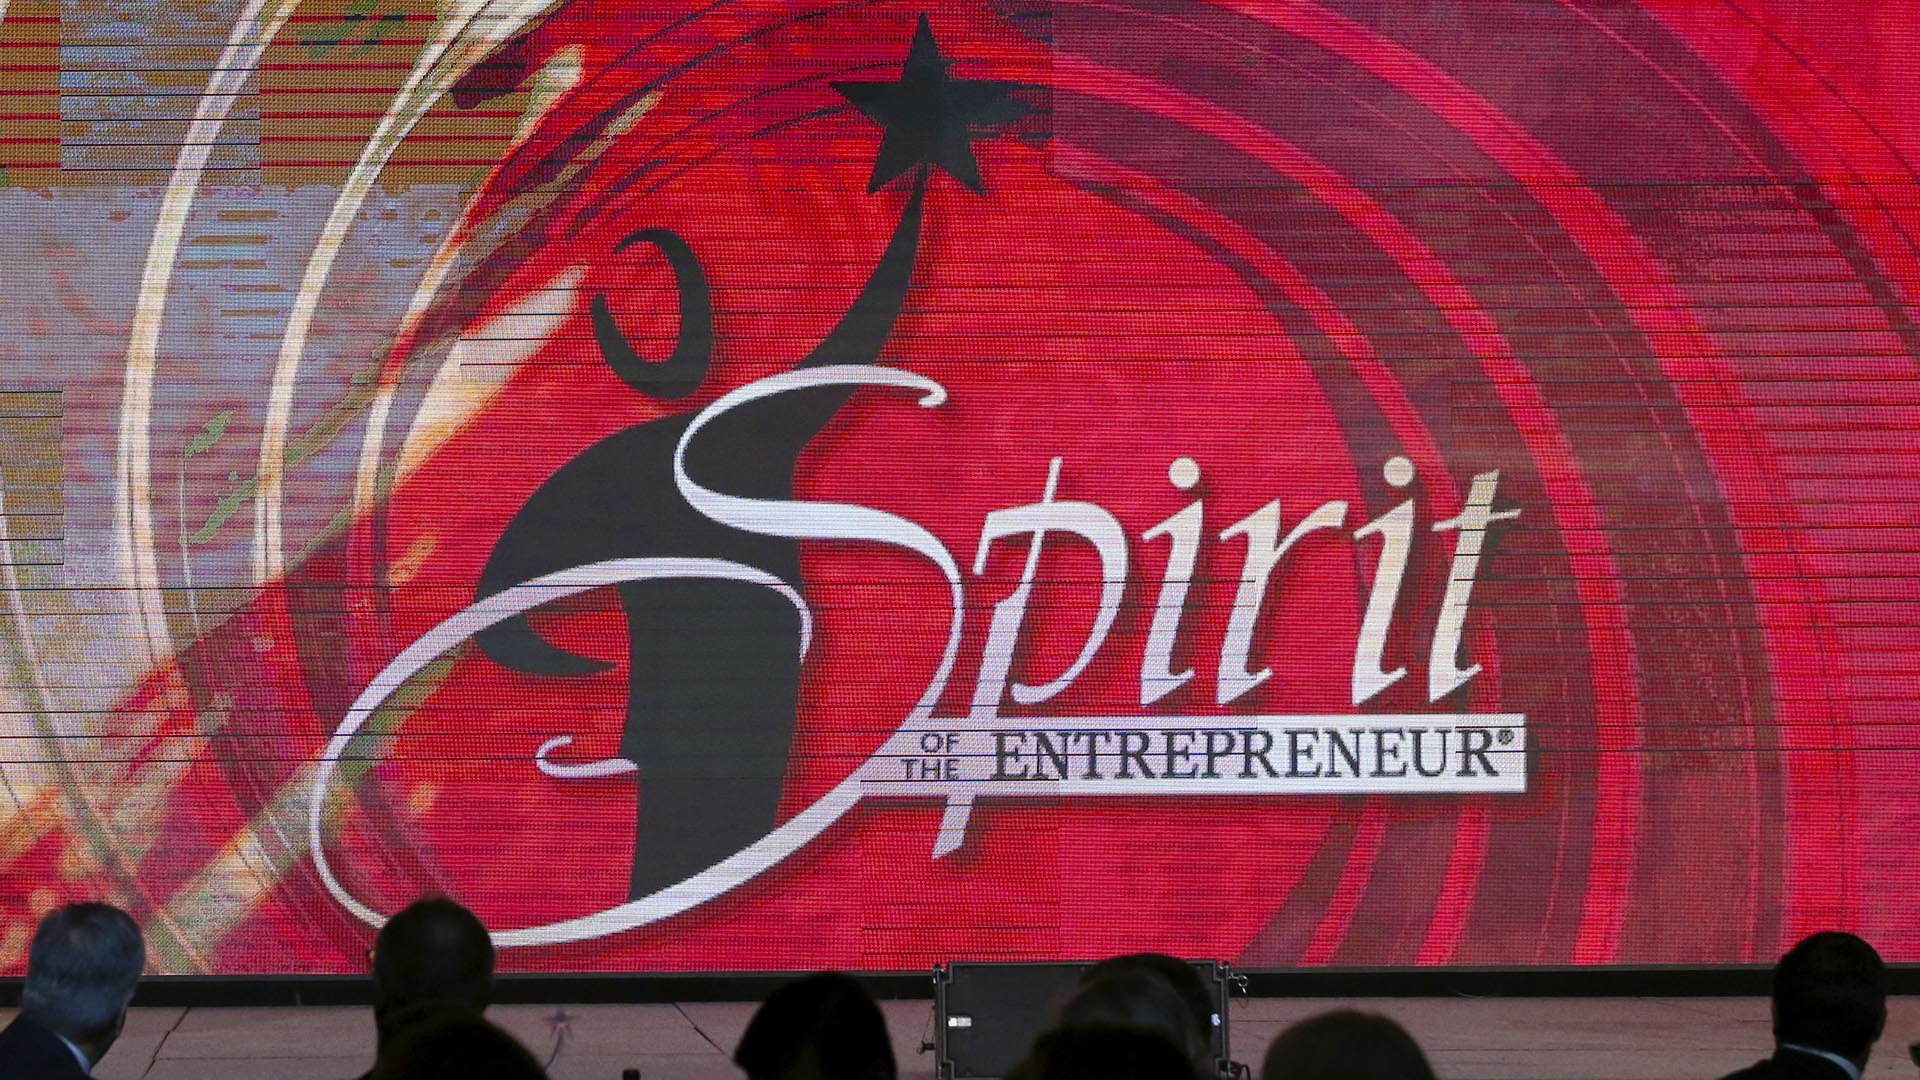 The Spirit of the Entrepreneur stage banner